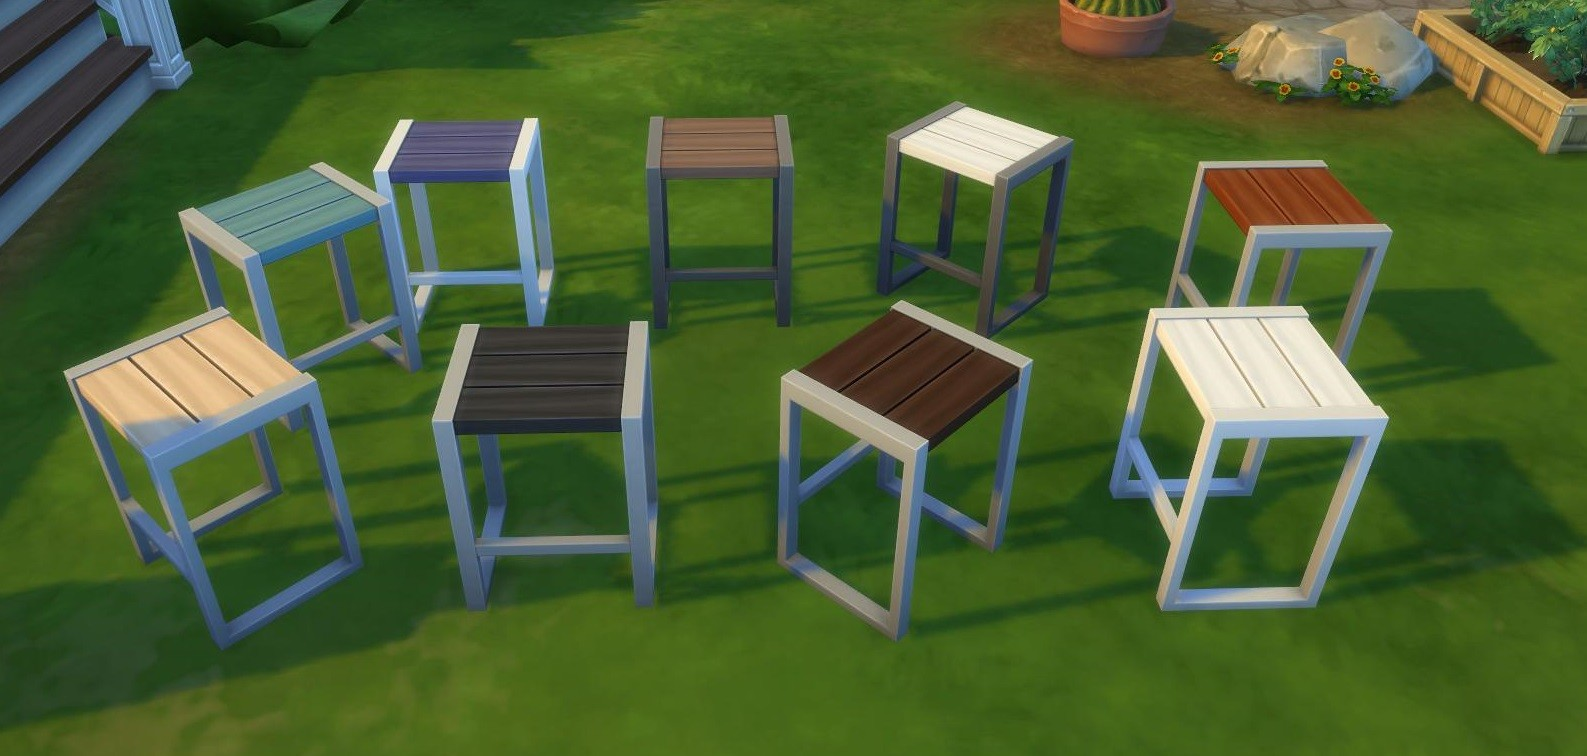 Sims 4 Ambiance Patio Meubles 03 Next Stage